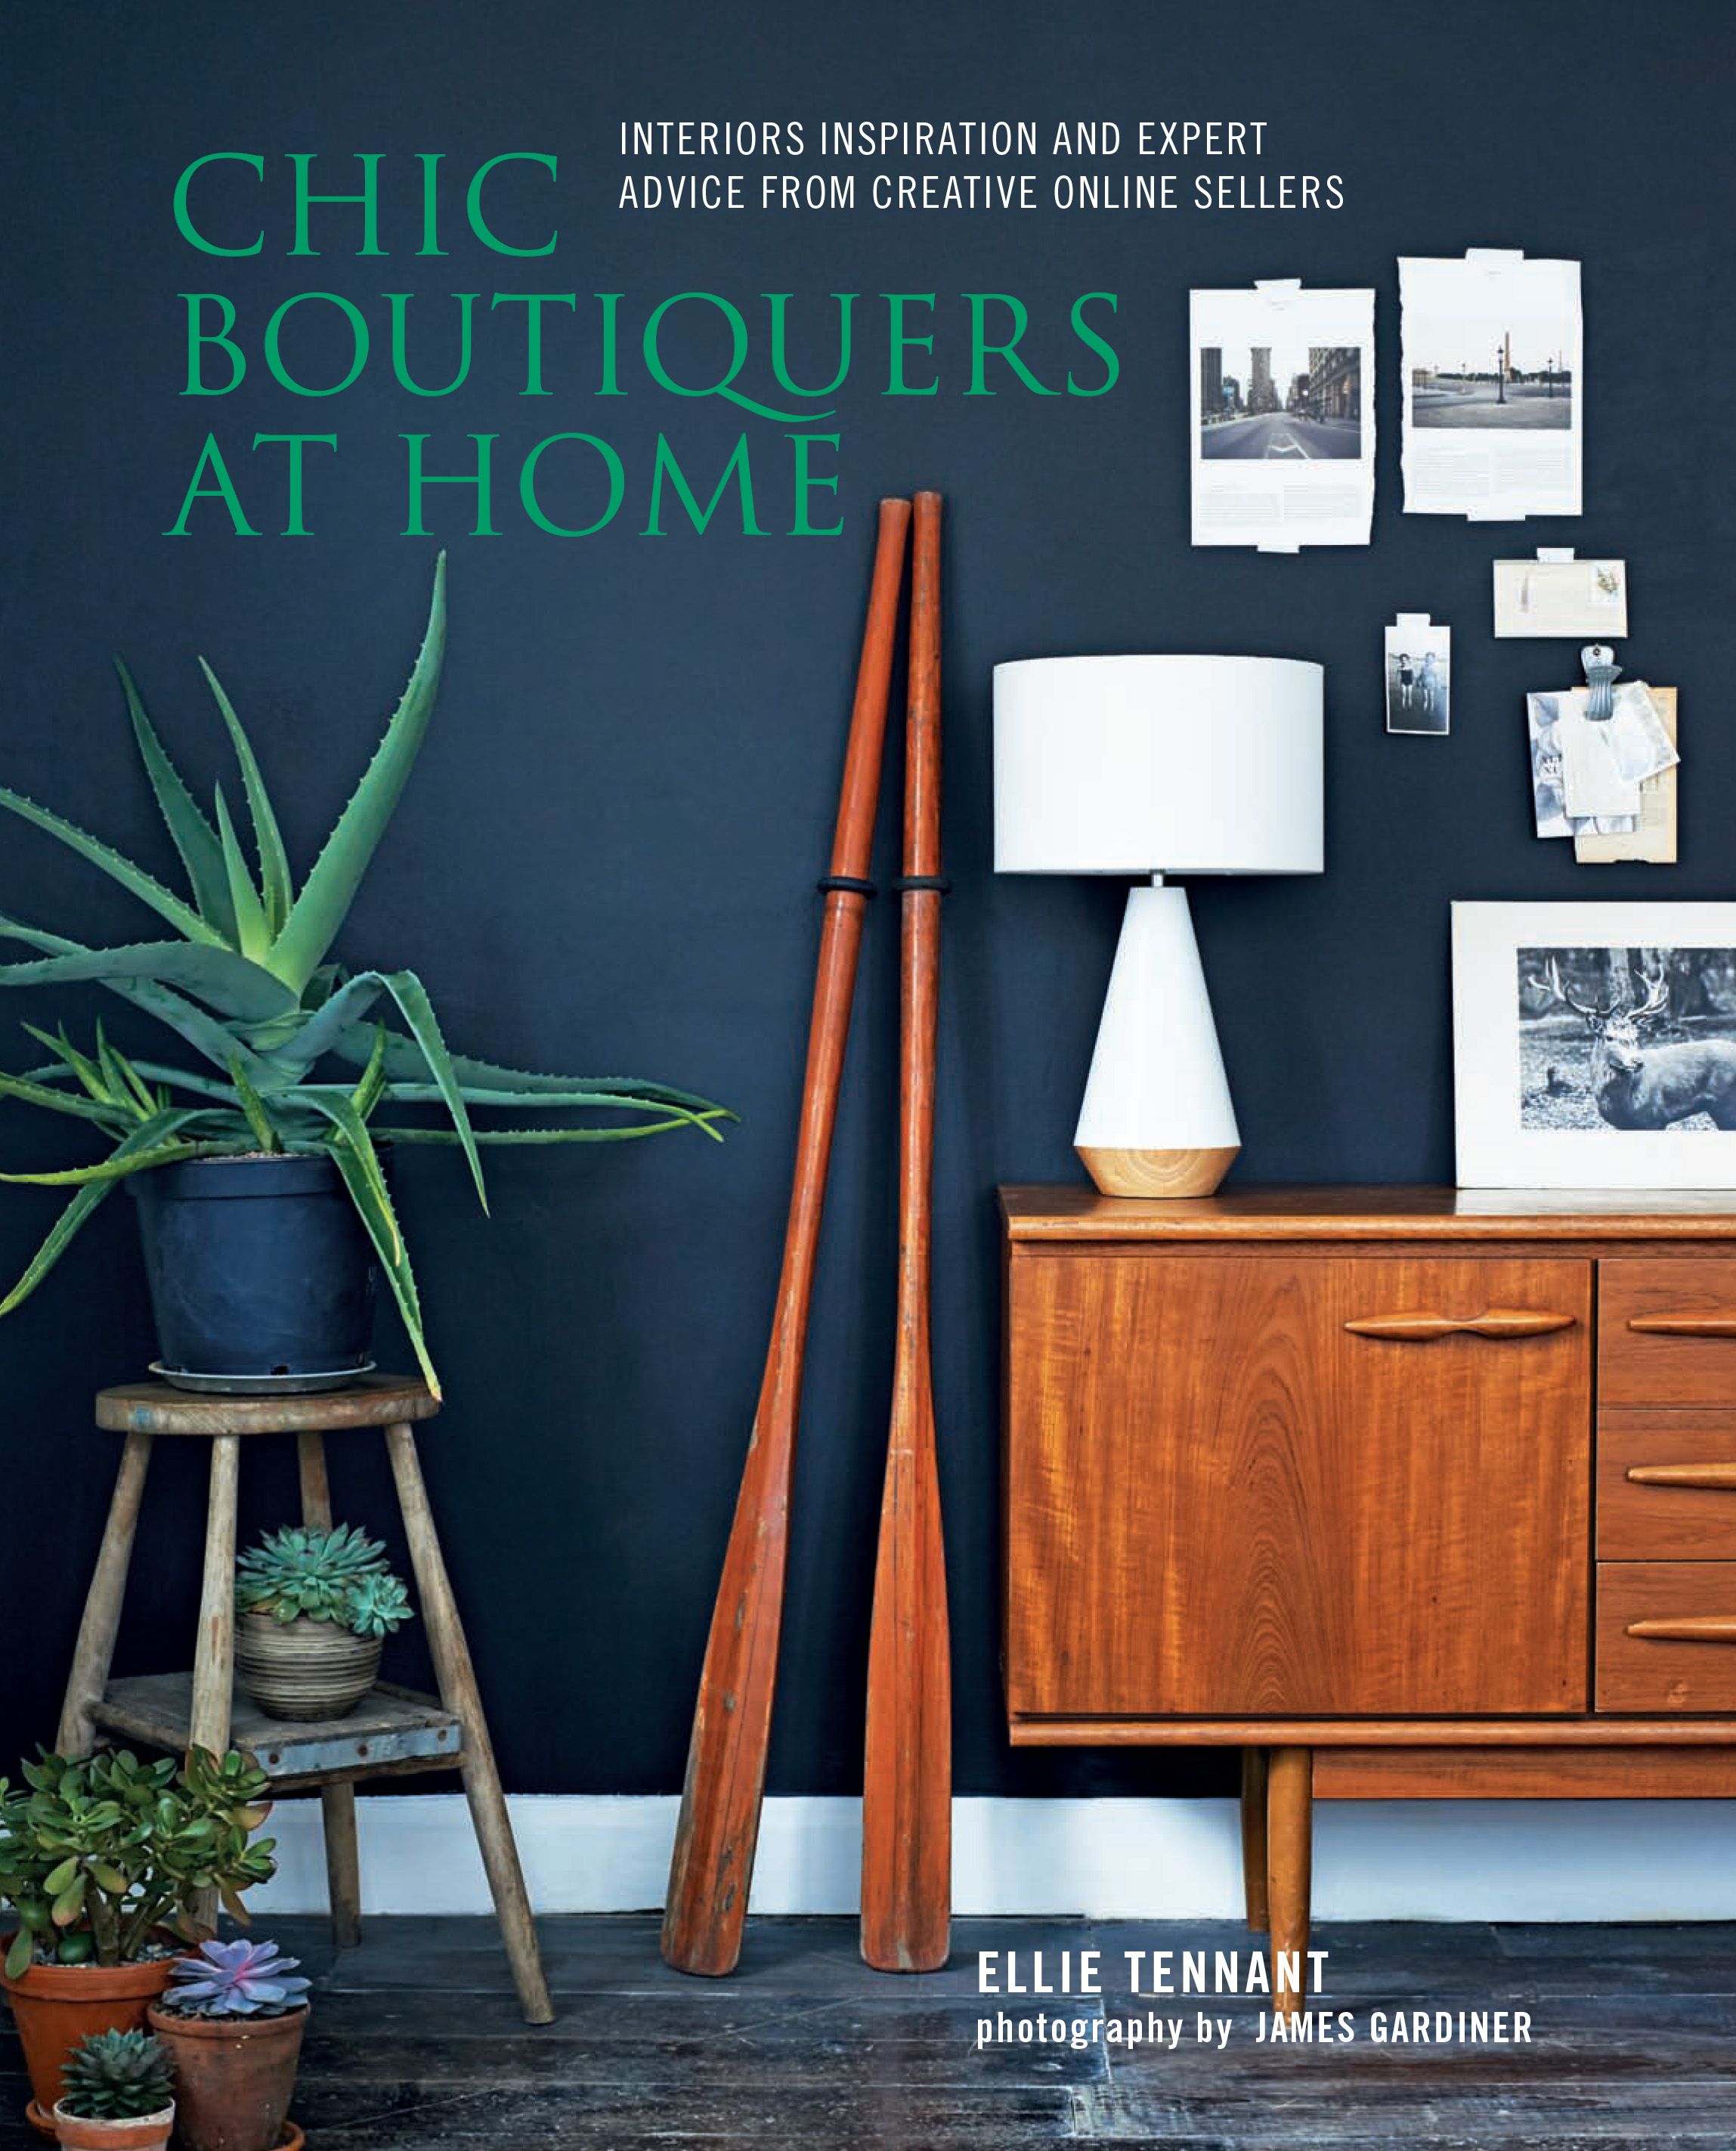 Chic Boutiquers at Home  by Ellie Tennant (RPS, £19.99) Photography by James Gardiner